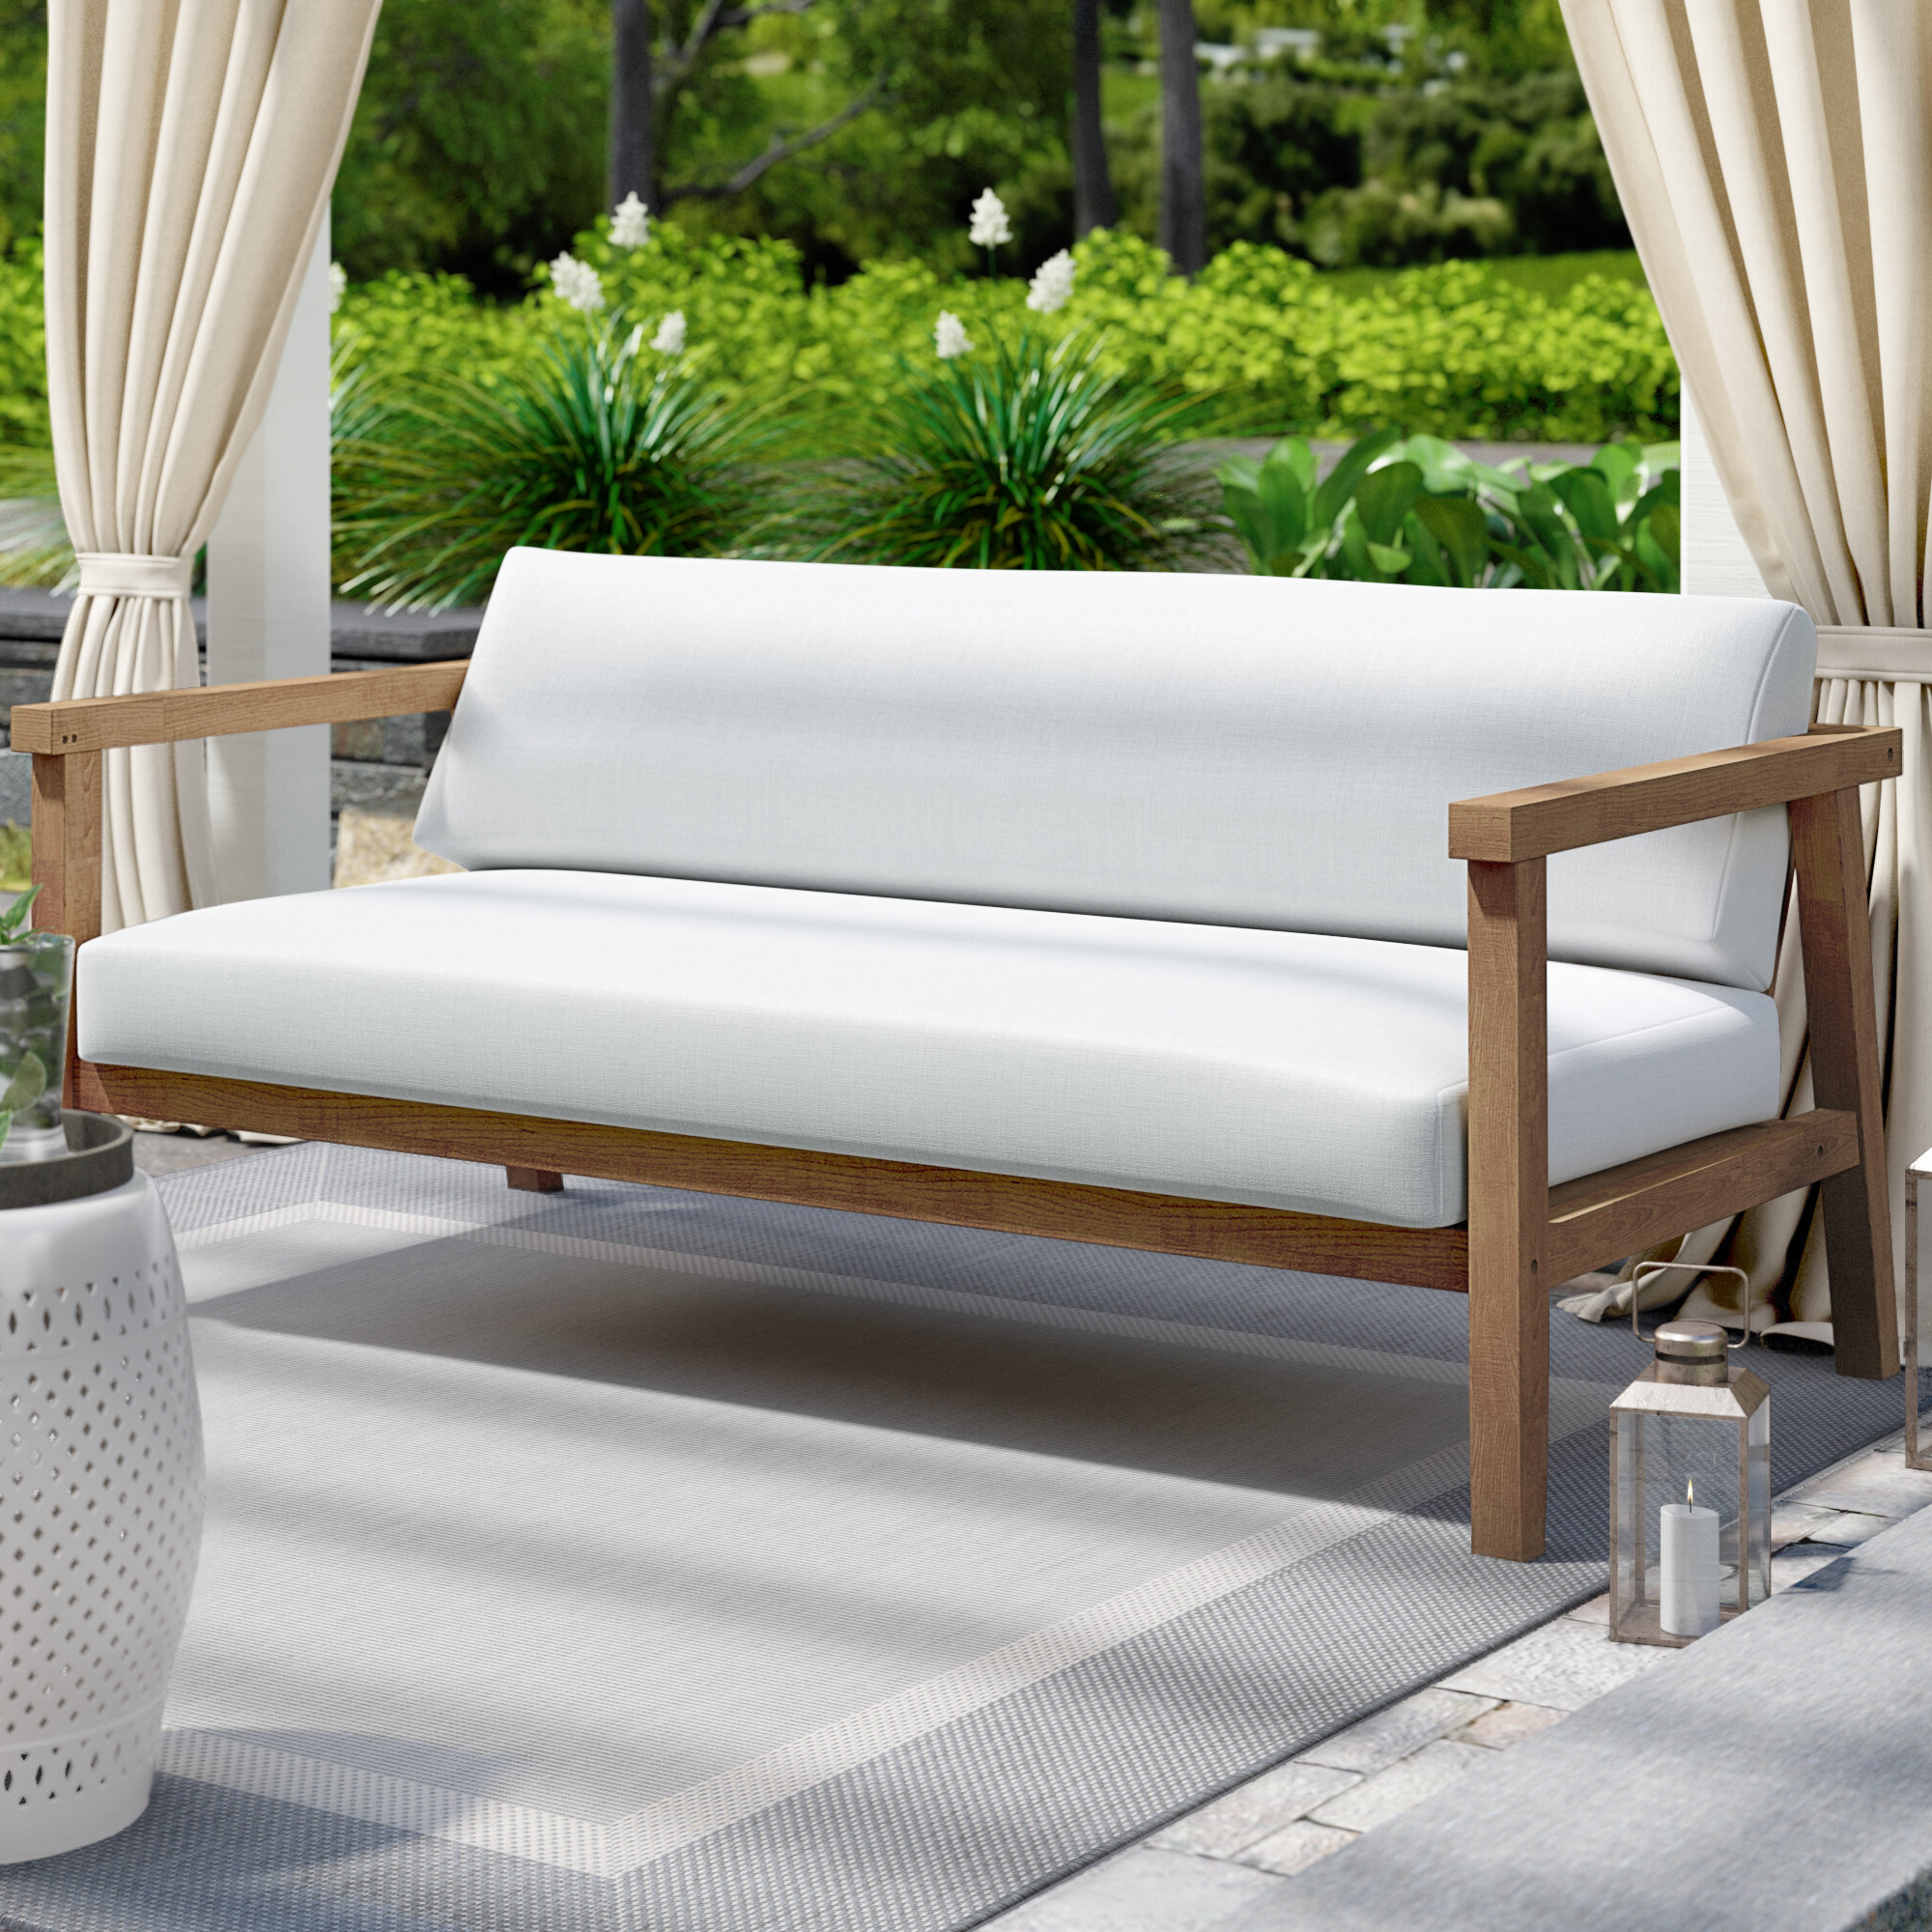 Annalese Outdoor Teak Loveseat With Cushions Pertaining To Latest Jamilla Teak Patio Sofas With Cushion (Gallery 8 of 25)